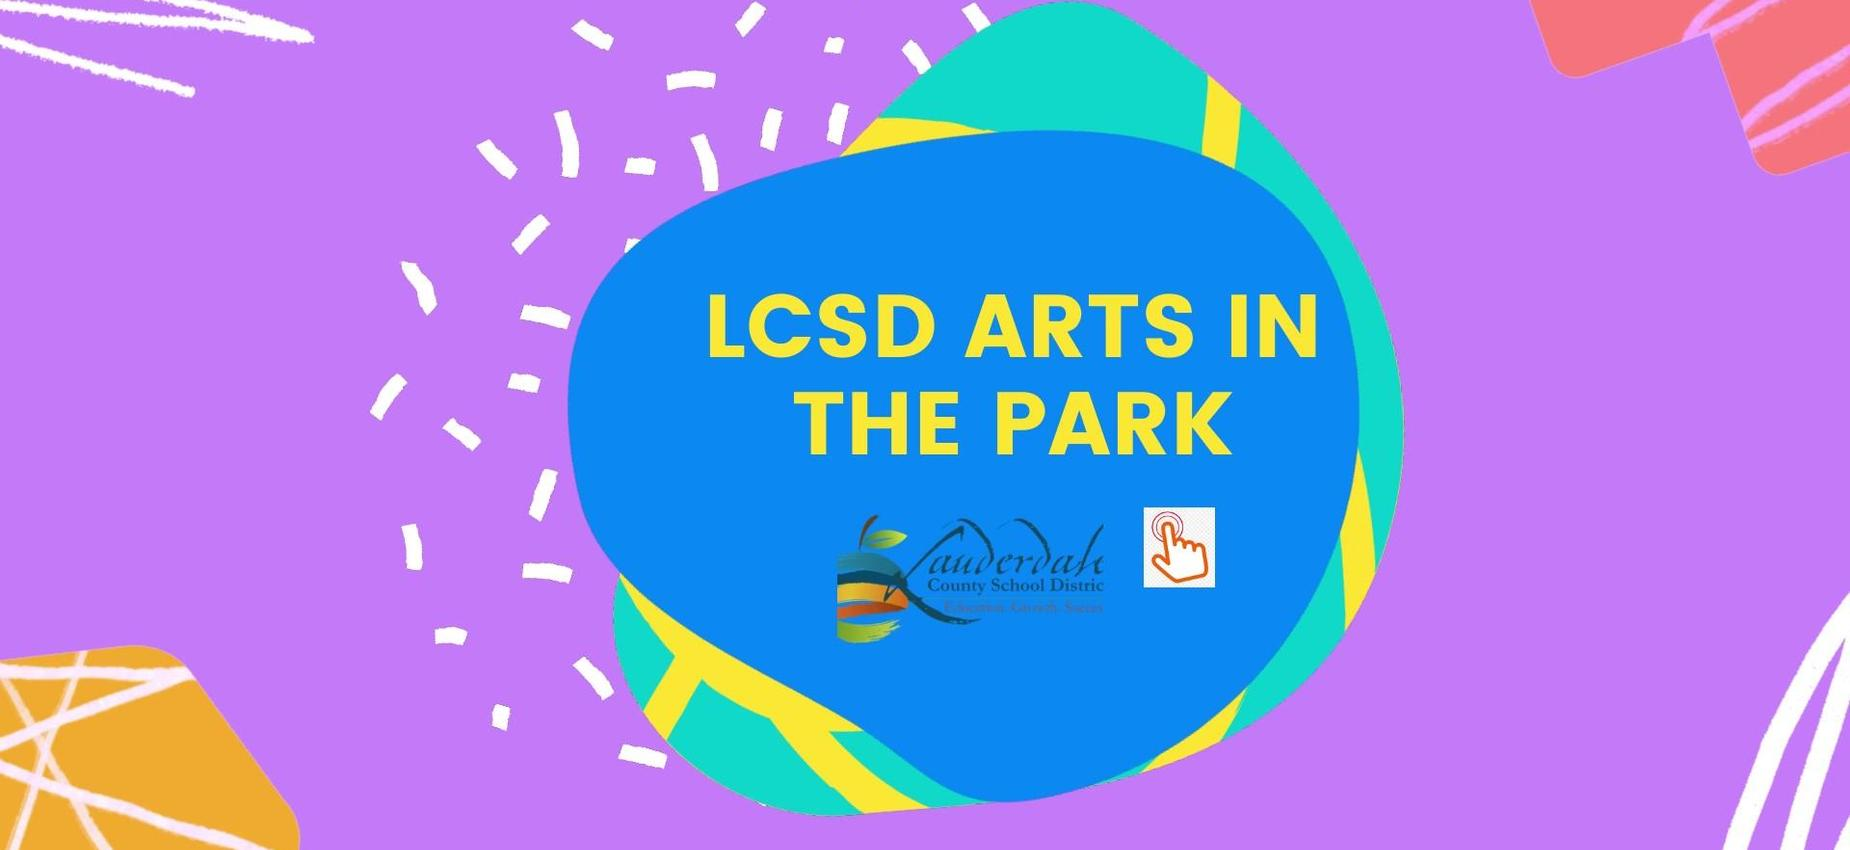 LCSD Arts in the Park Graphic